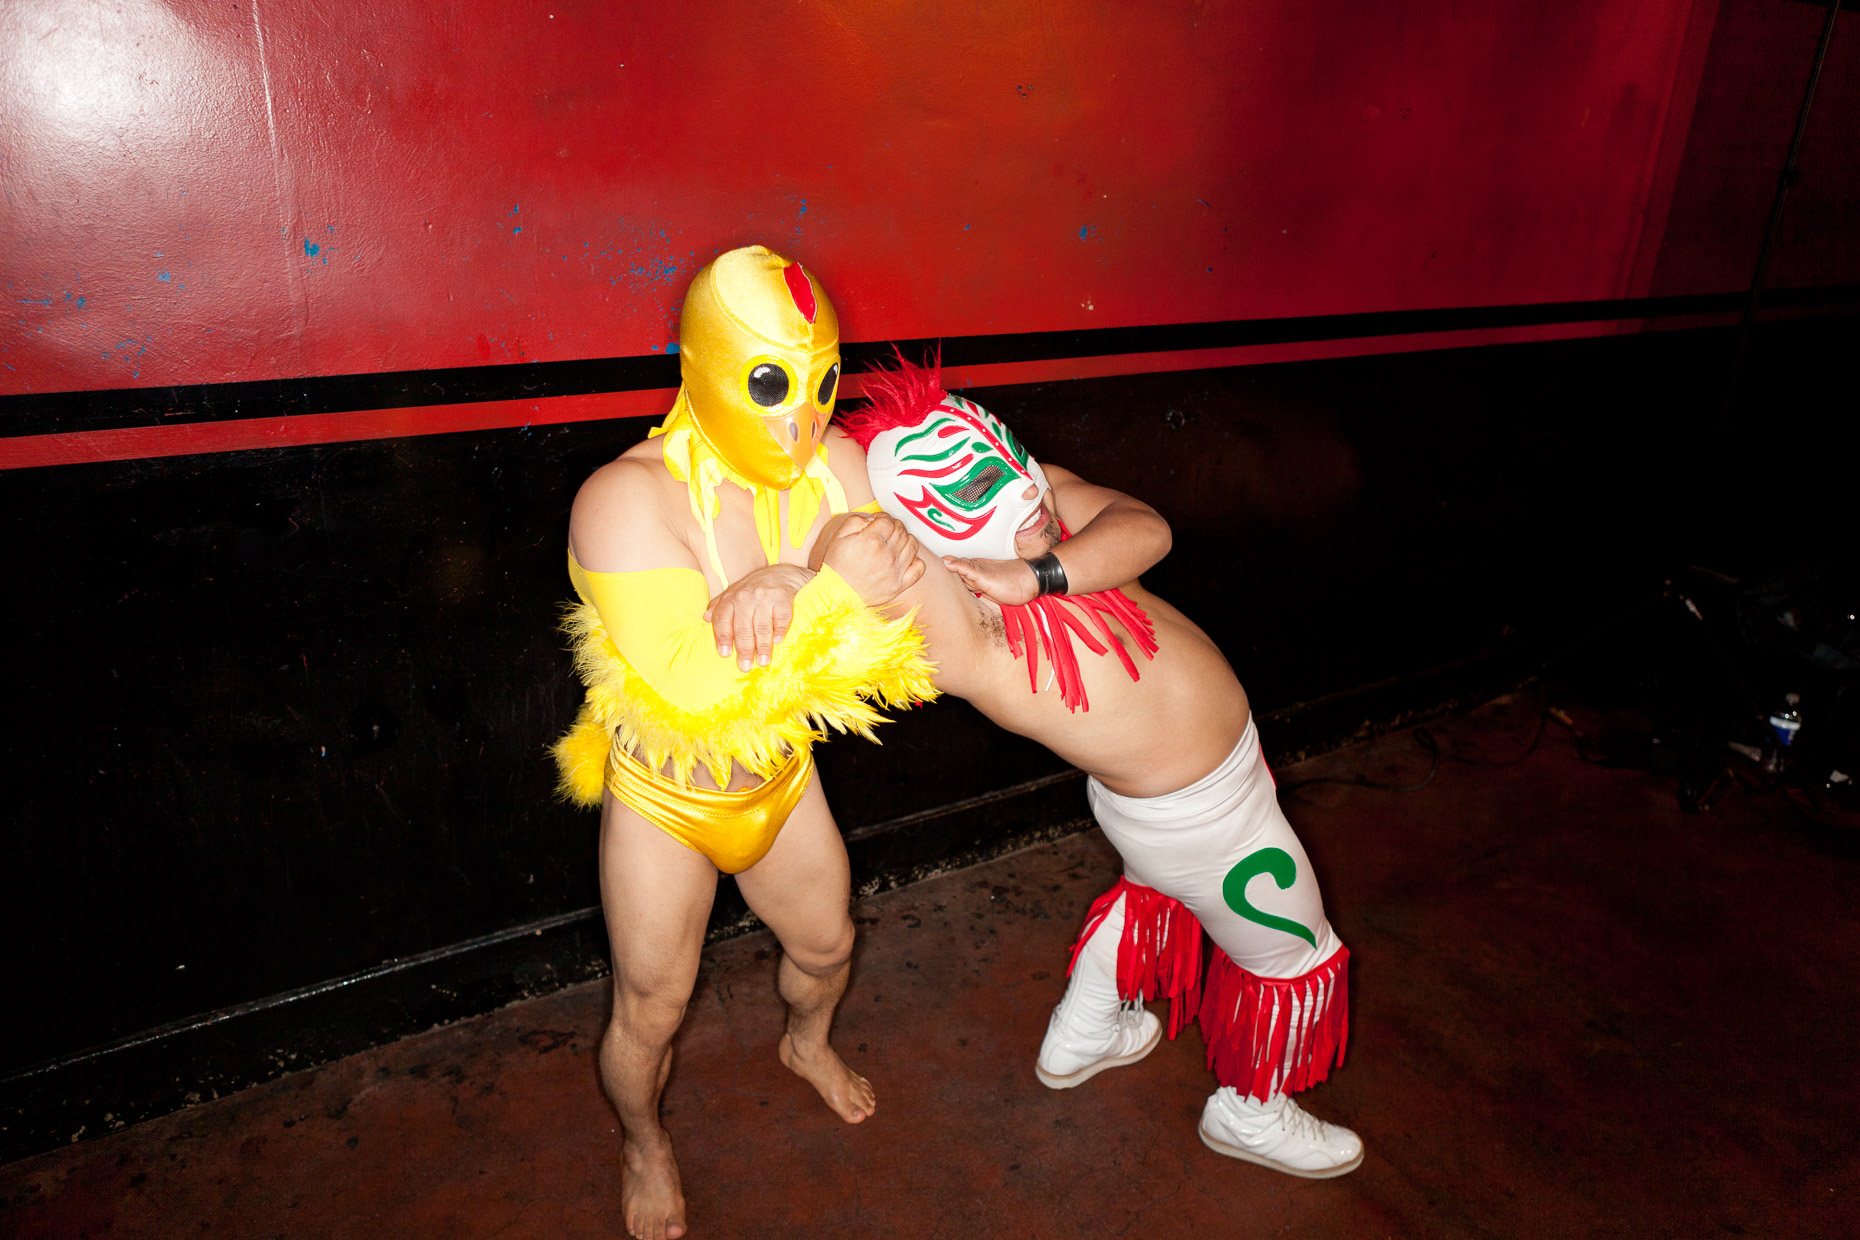 Lucha Vavoom Mexican wrestling and burlesque show in Los Angeles by David Zaitz